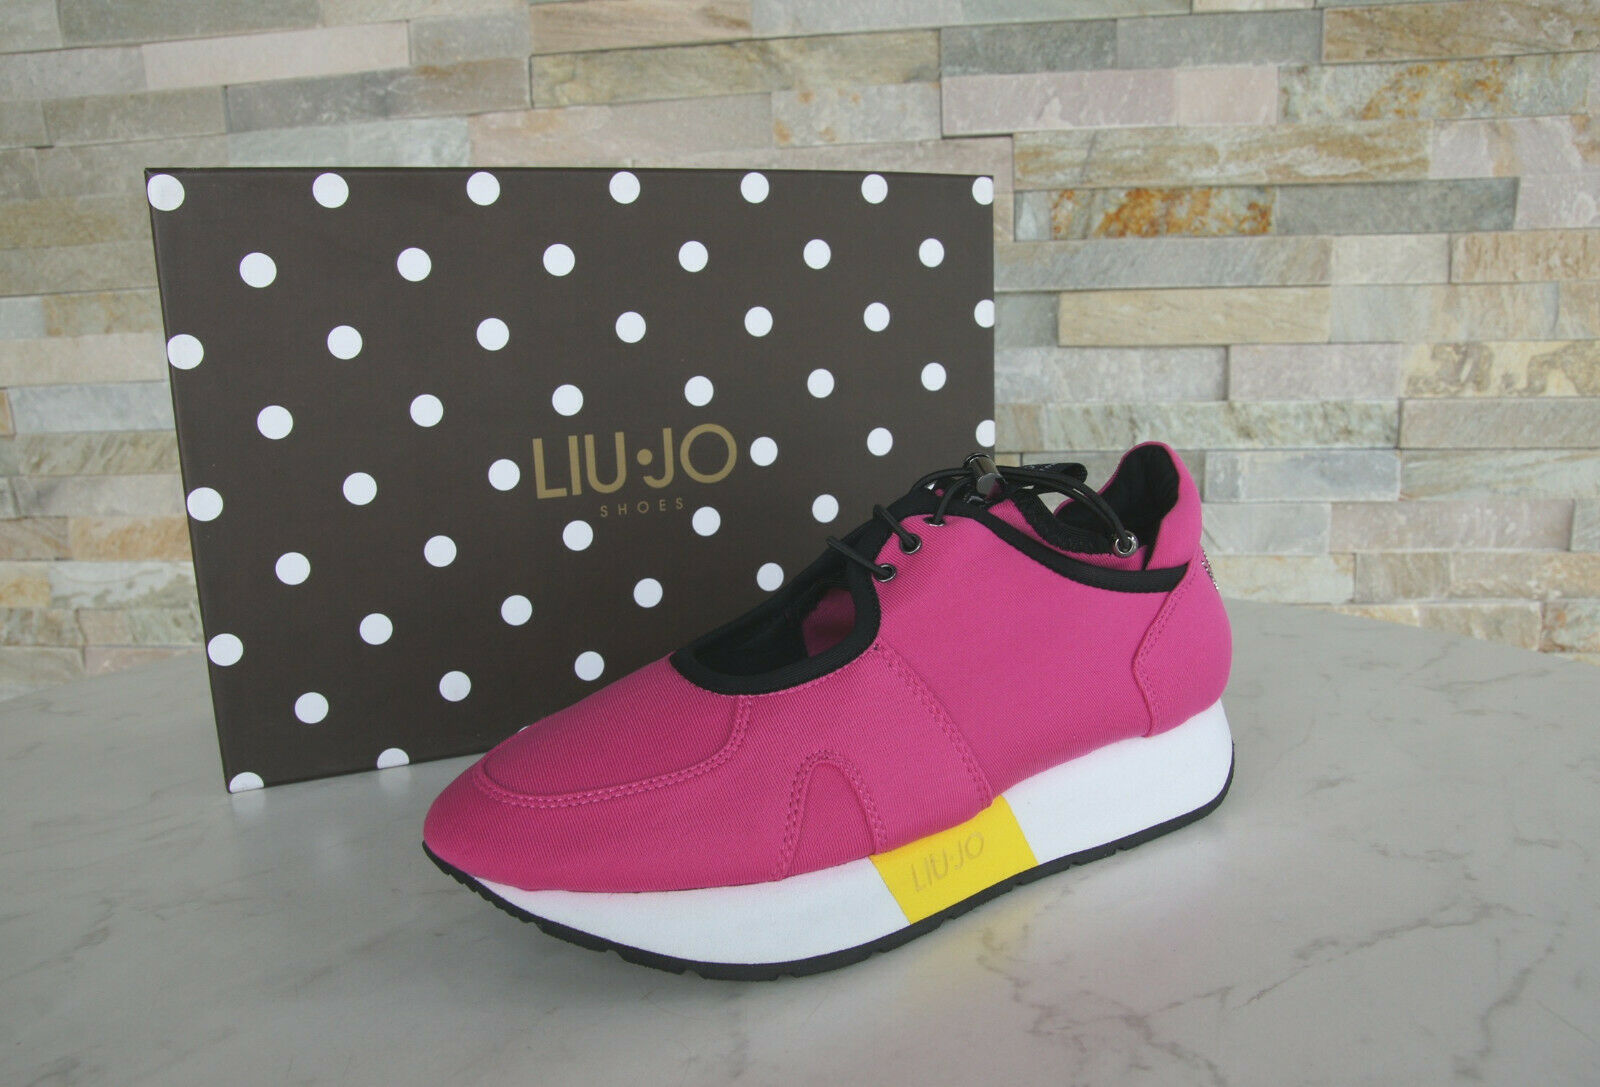 Liu Jo Size 35 Sneakers Low shoes Slip on shoes May Fuxia Pink New Previously